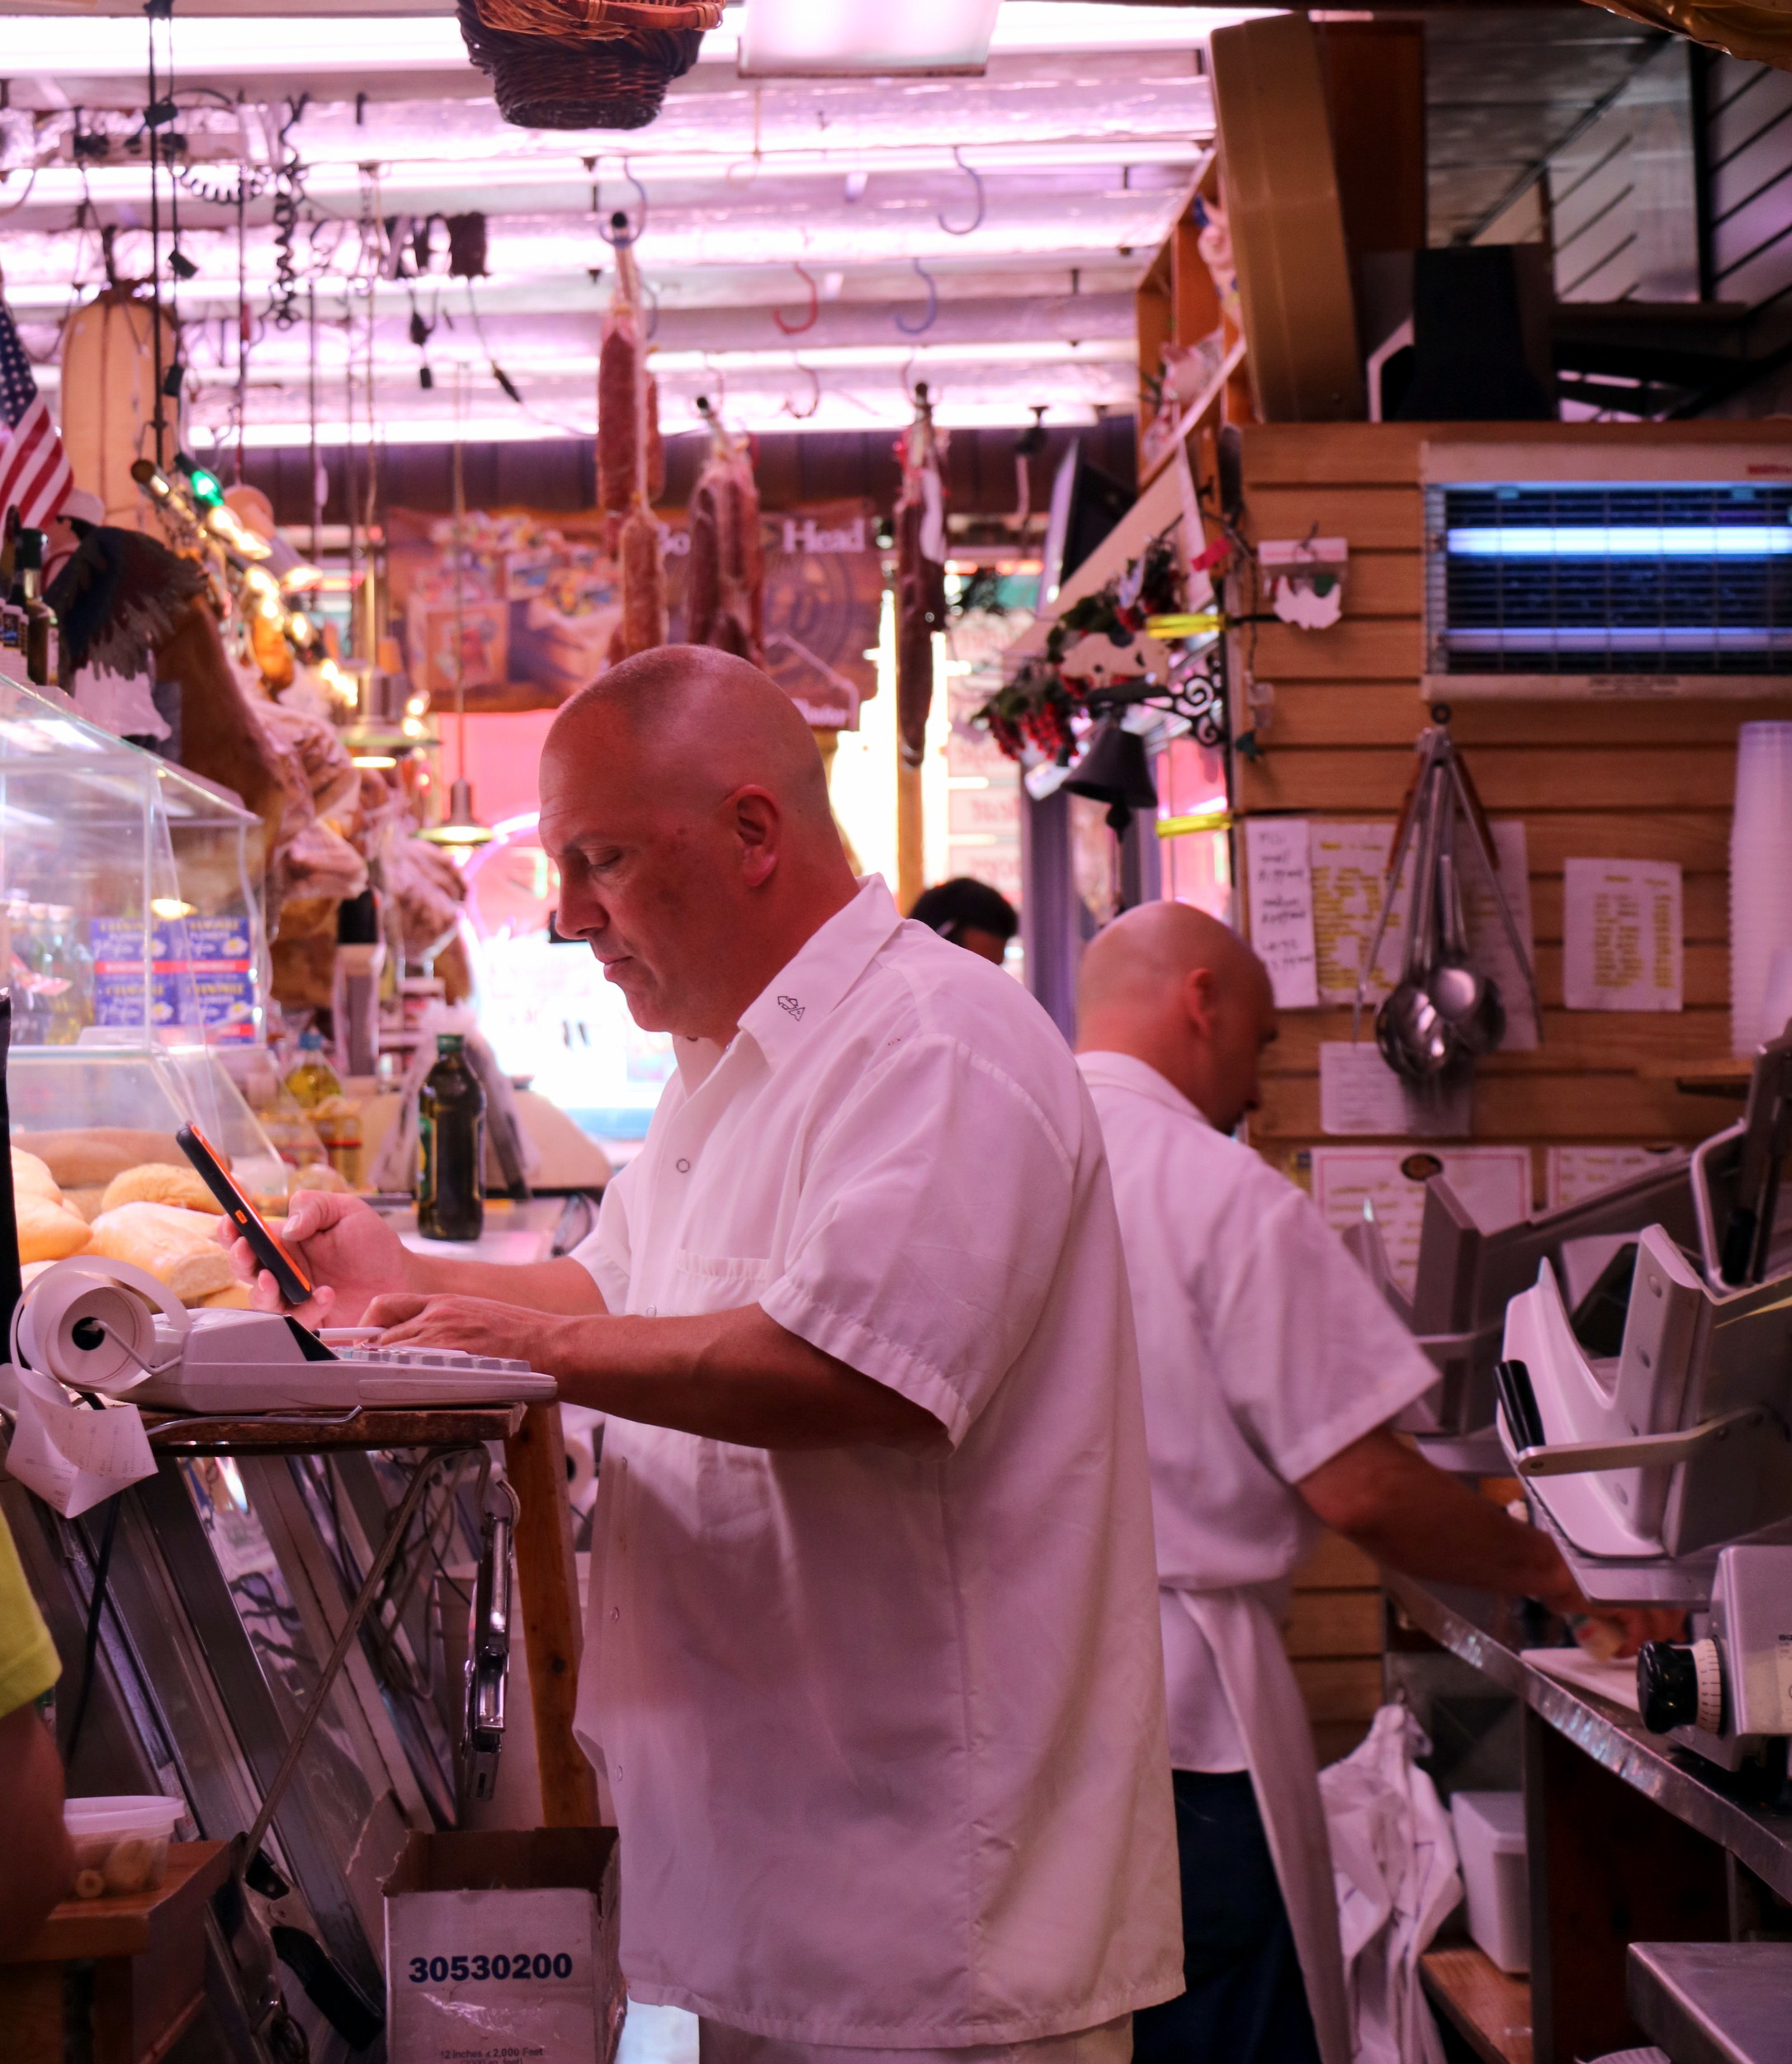 John Carlino is co-owner of the T&F Pork Store in Franklin Square, which he bought from his two uncles, both Italian immigrants.